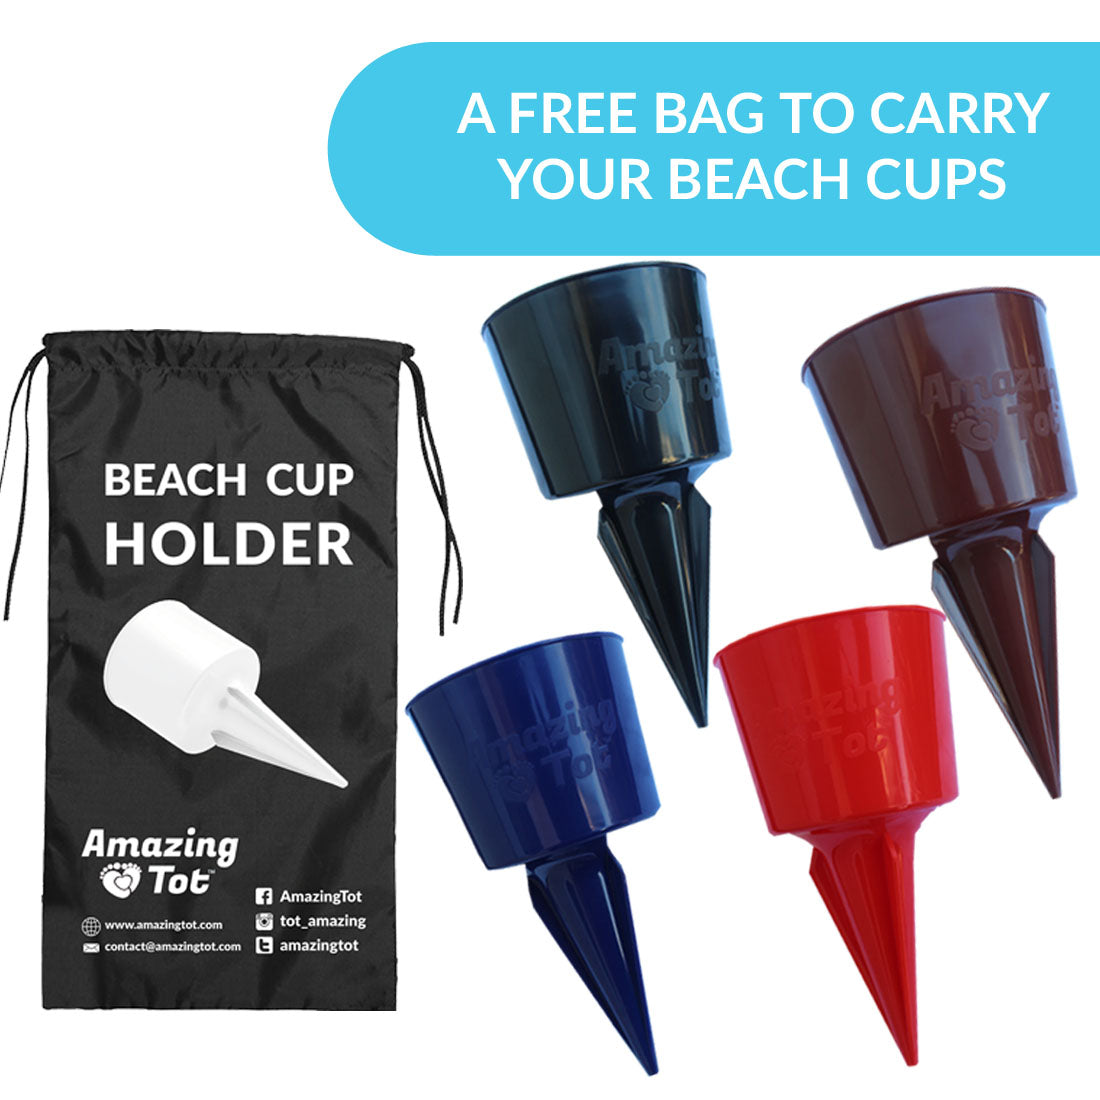 Beach Sand Coaster Cup Holder - Perfectly Sized Beach Beverage Holder for Drinks and Small Items - Available in Multiple Colors - Drink Cup Holder Made of Quality Plastic